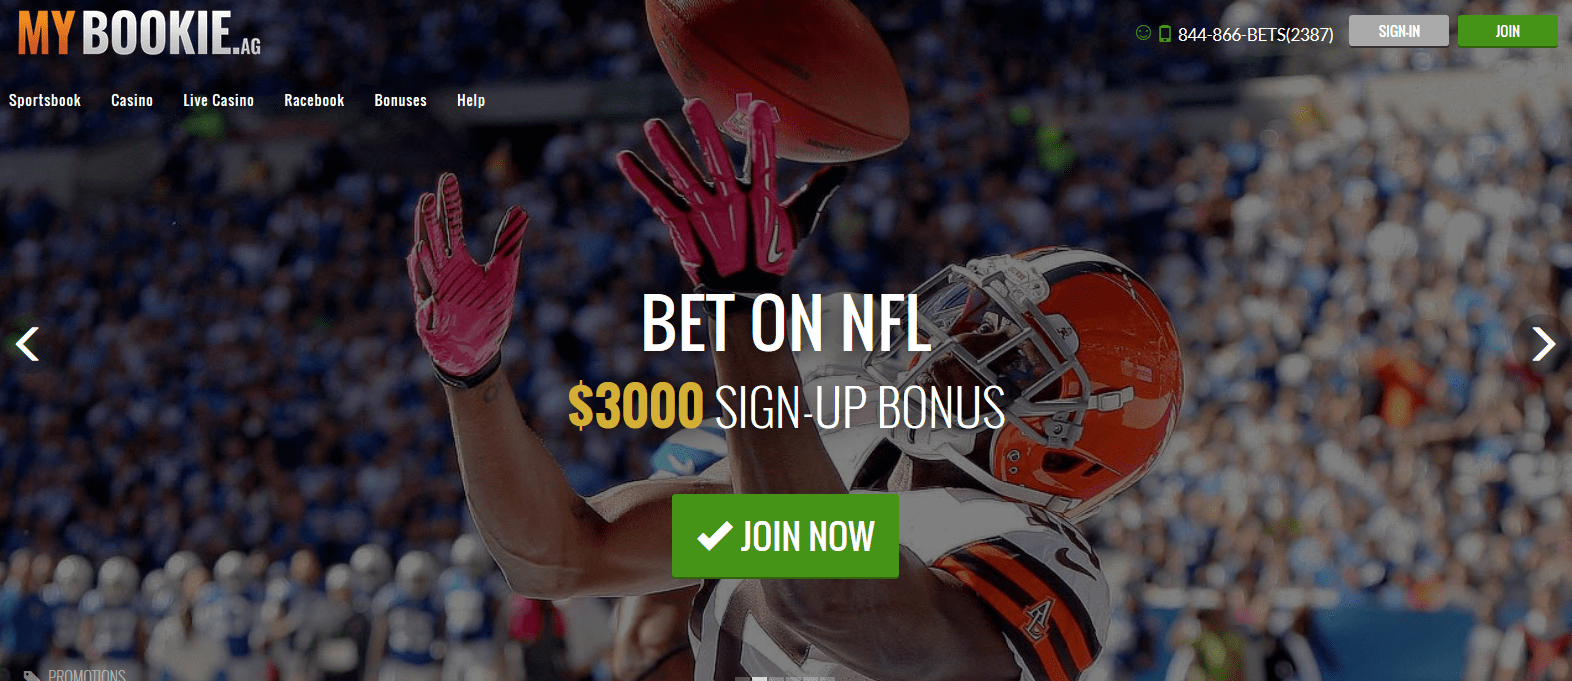 supper bowl online betting nfl online